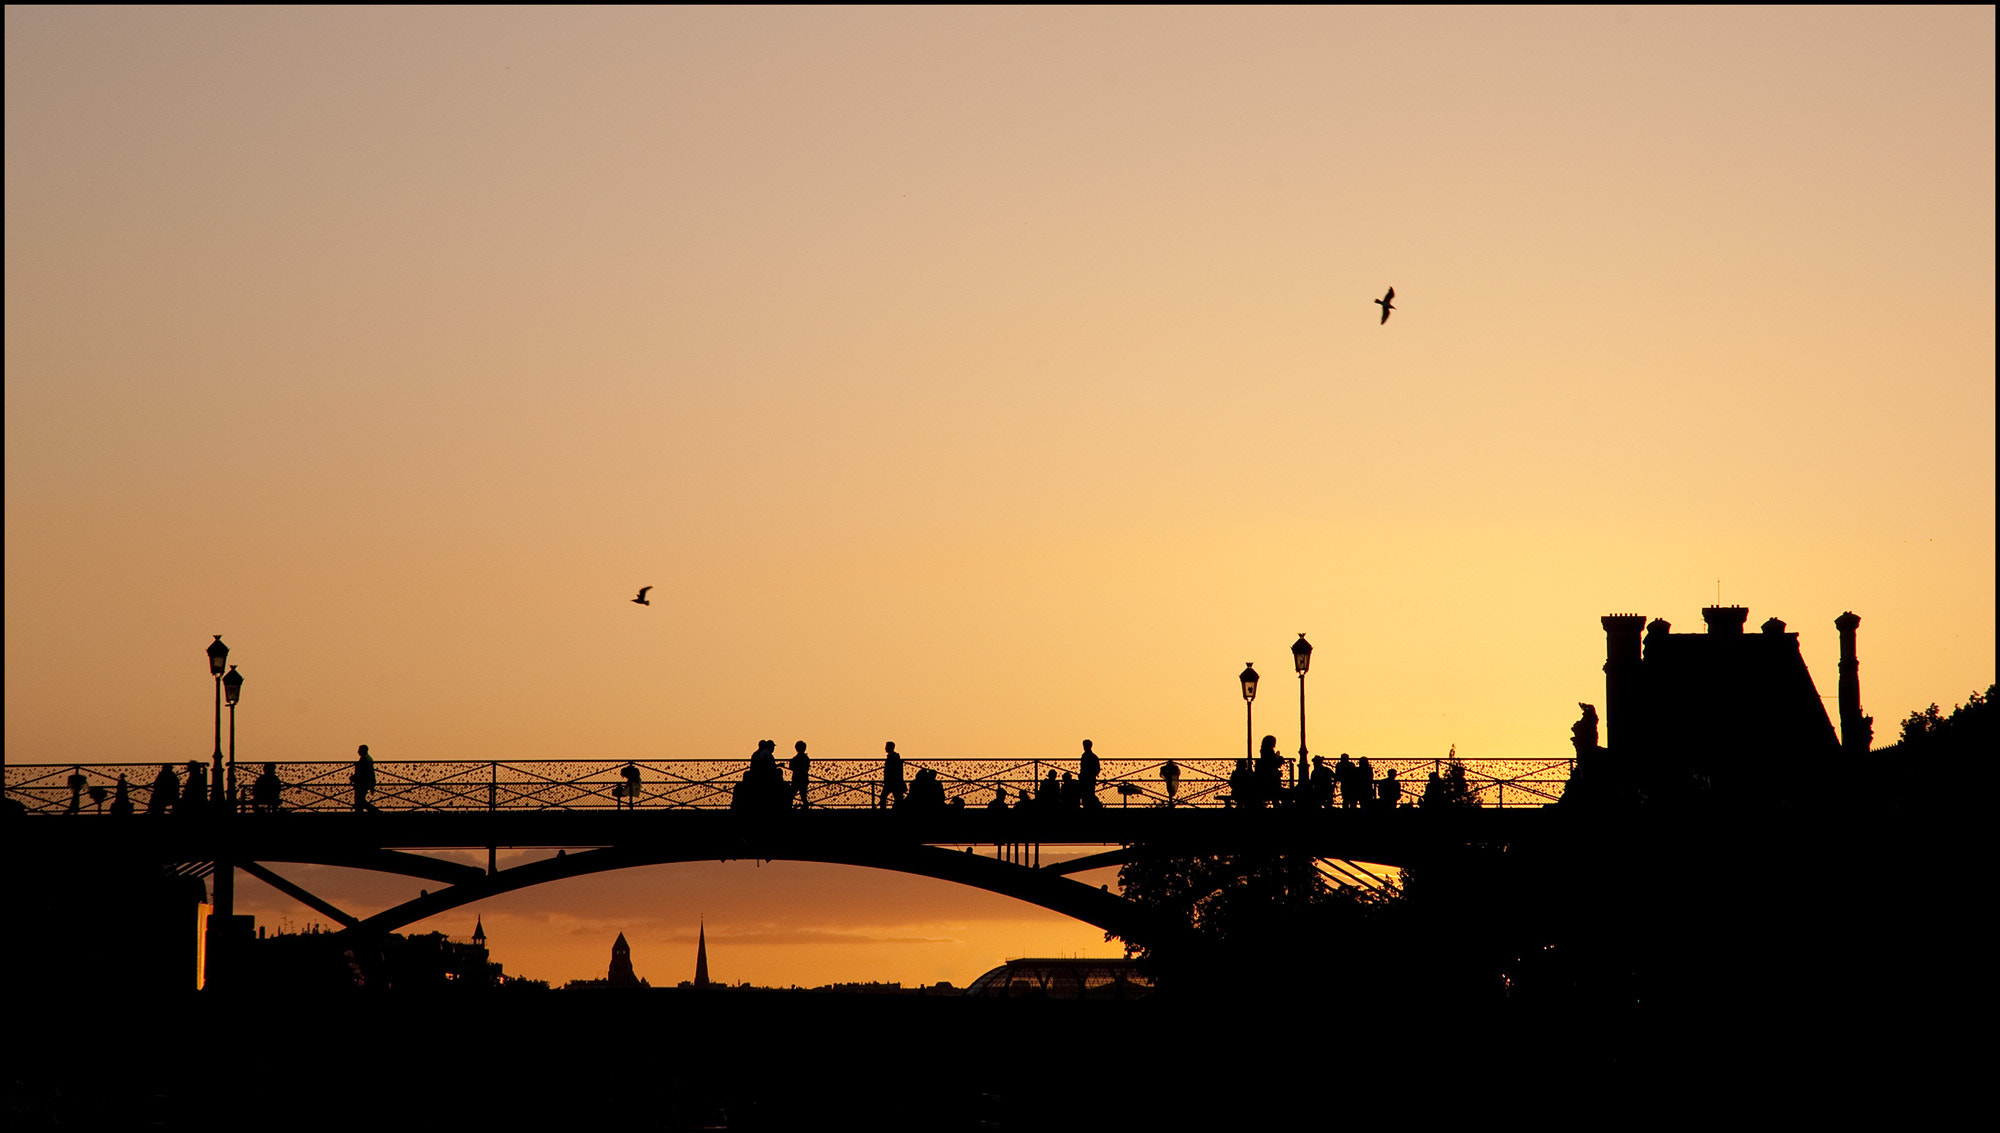 Photograph On the Bridge by Hornberger David on 500px